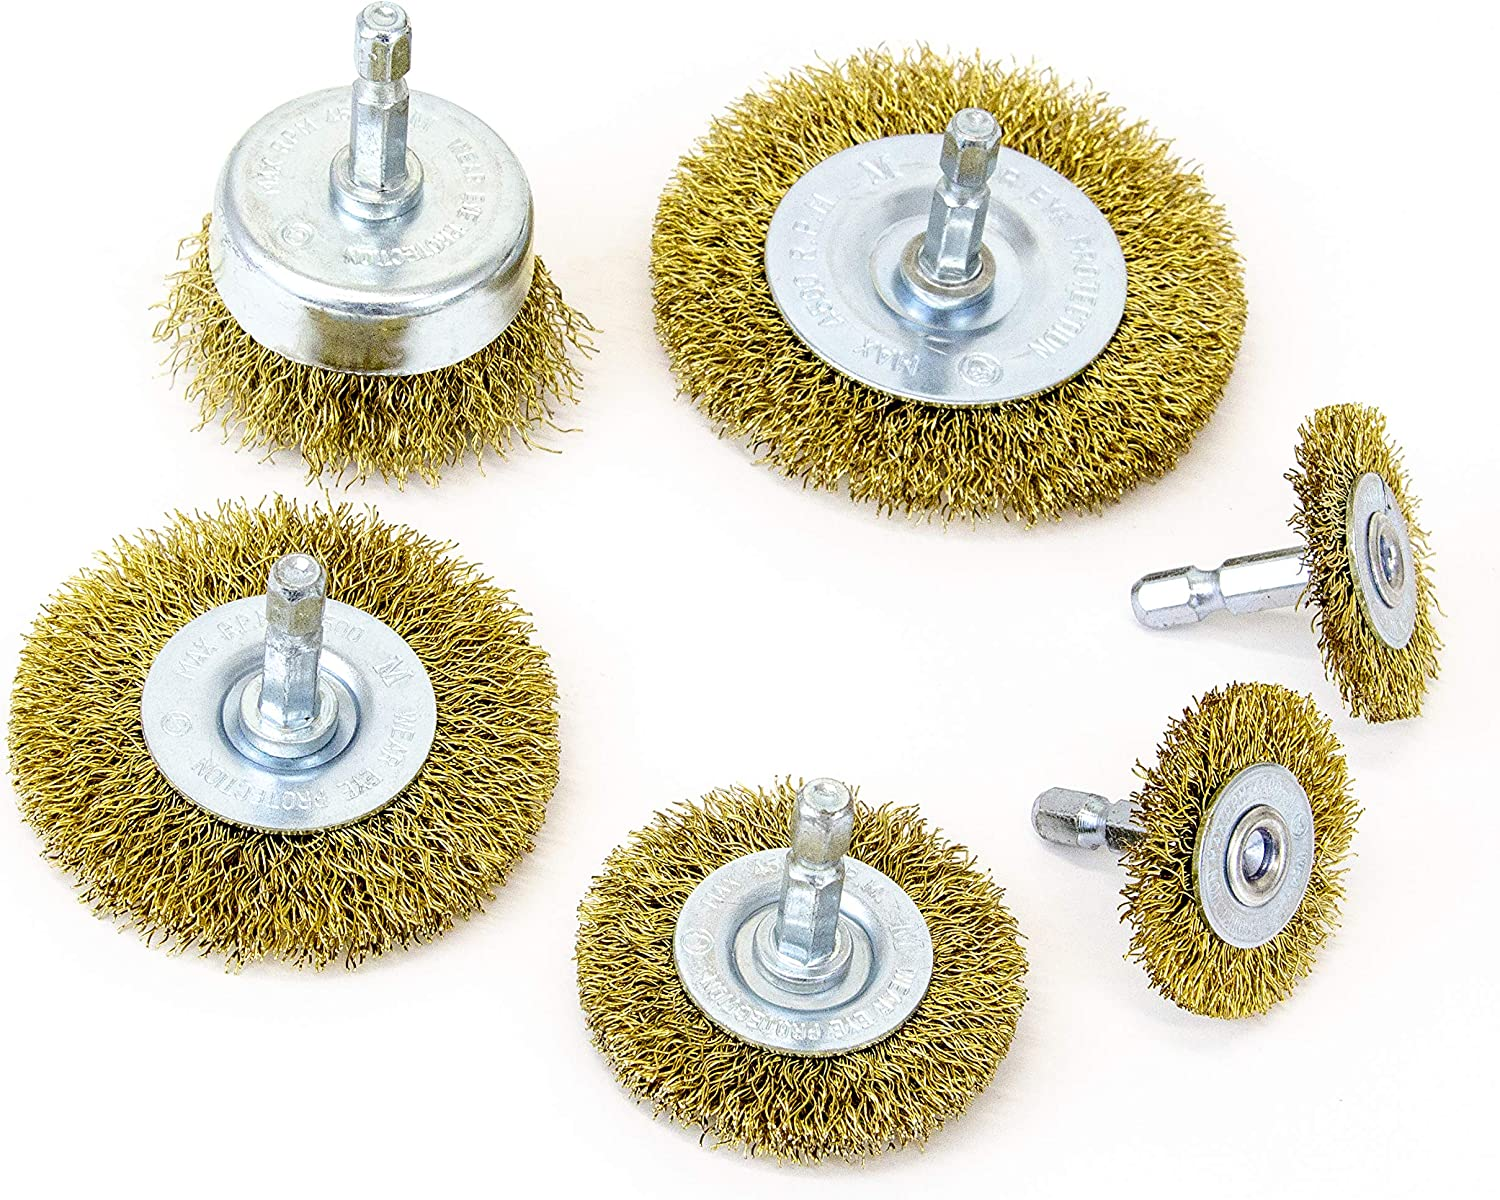 """MIBRO 971531 General Purpose Brass Coated Coarse Wire Wheel and Cup Brush Set with 1/4"""" Hex Shank, 6 Pieces"""